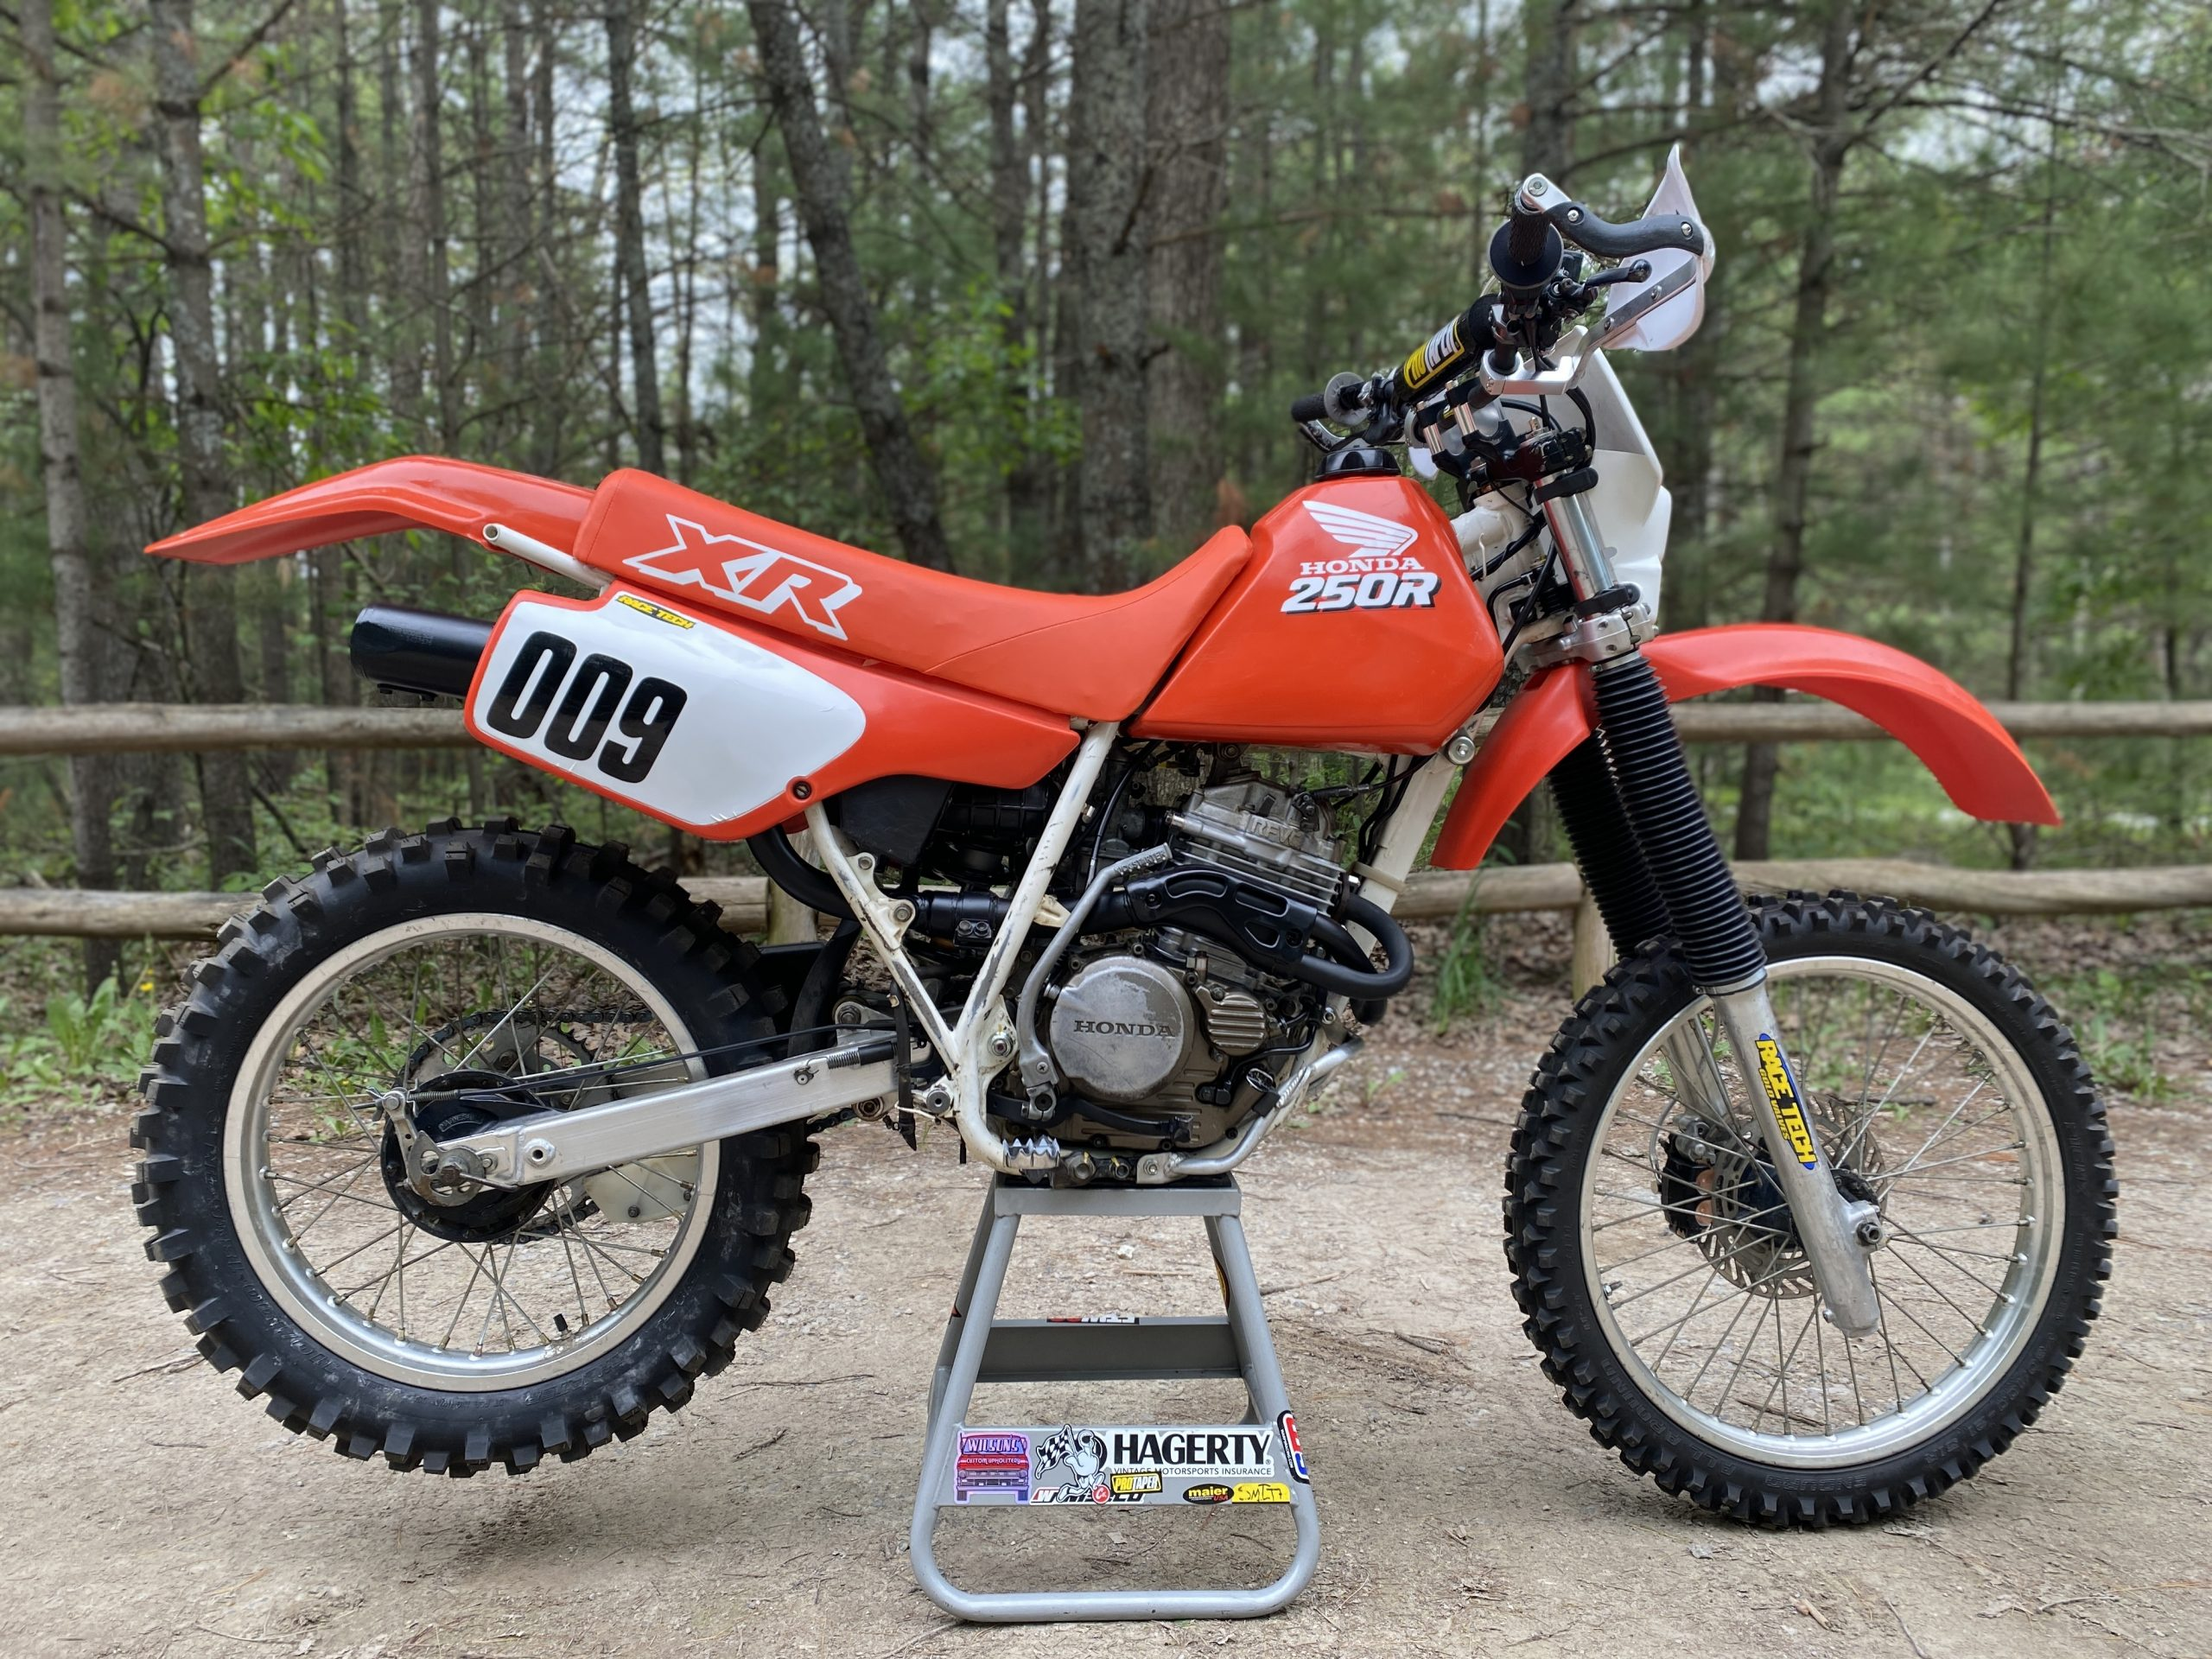 Honda XR250R right side completed